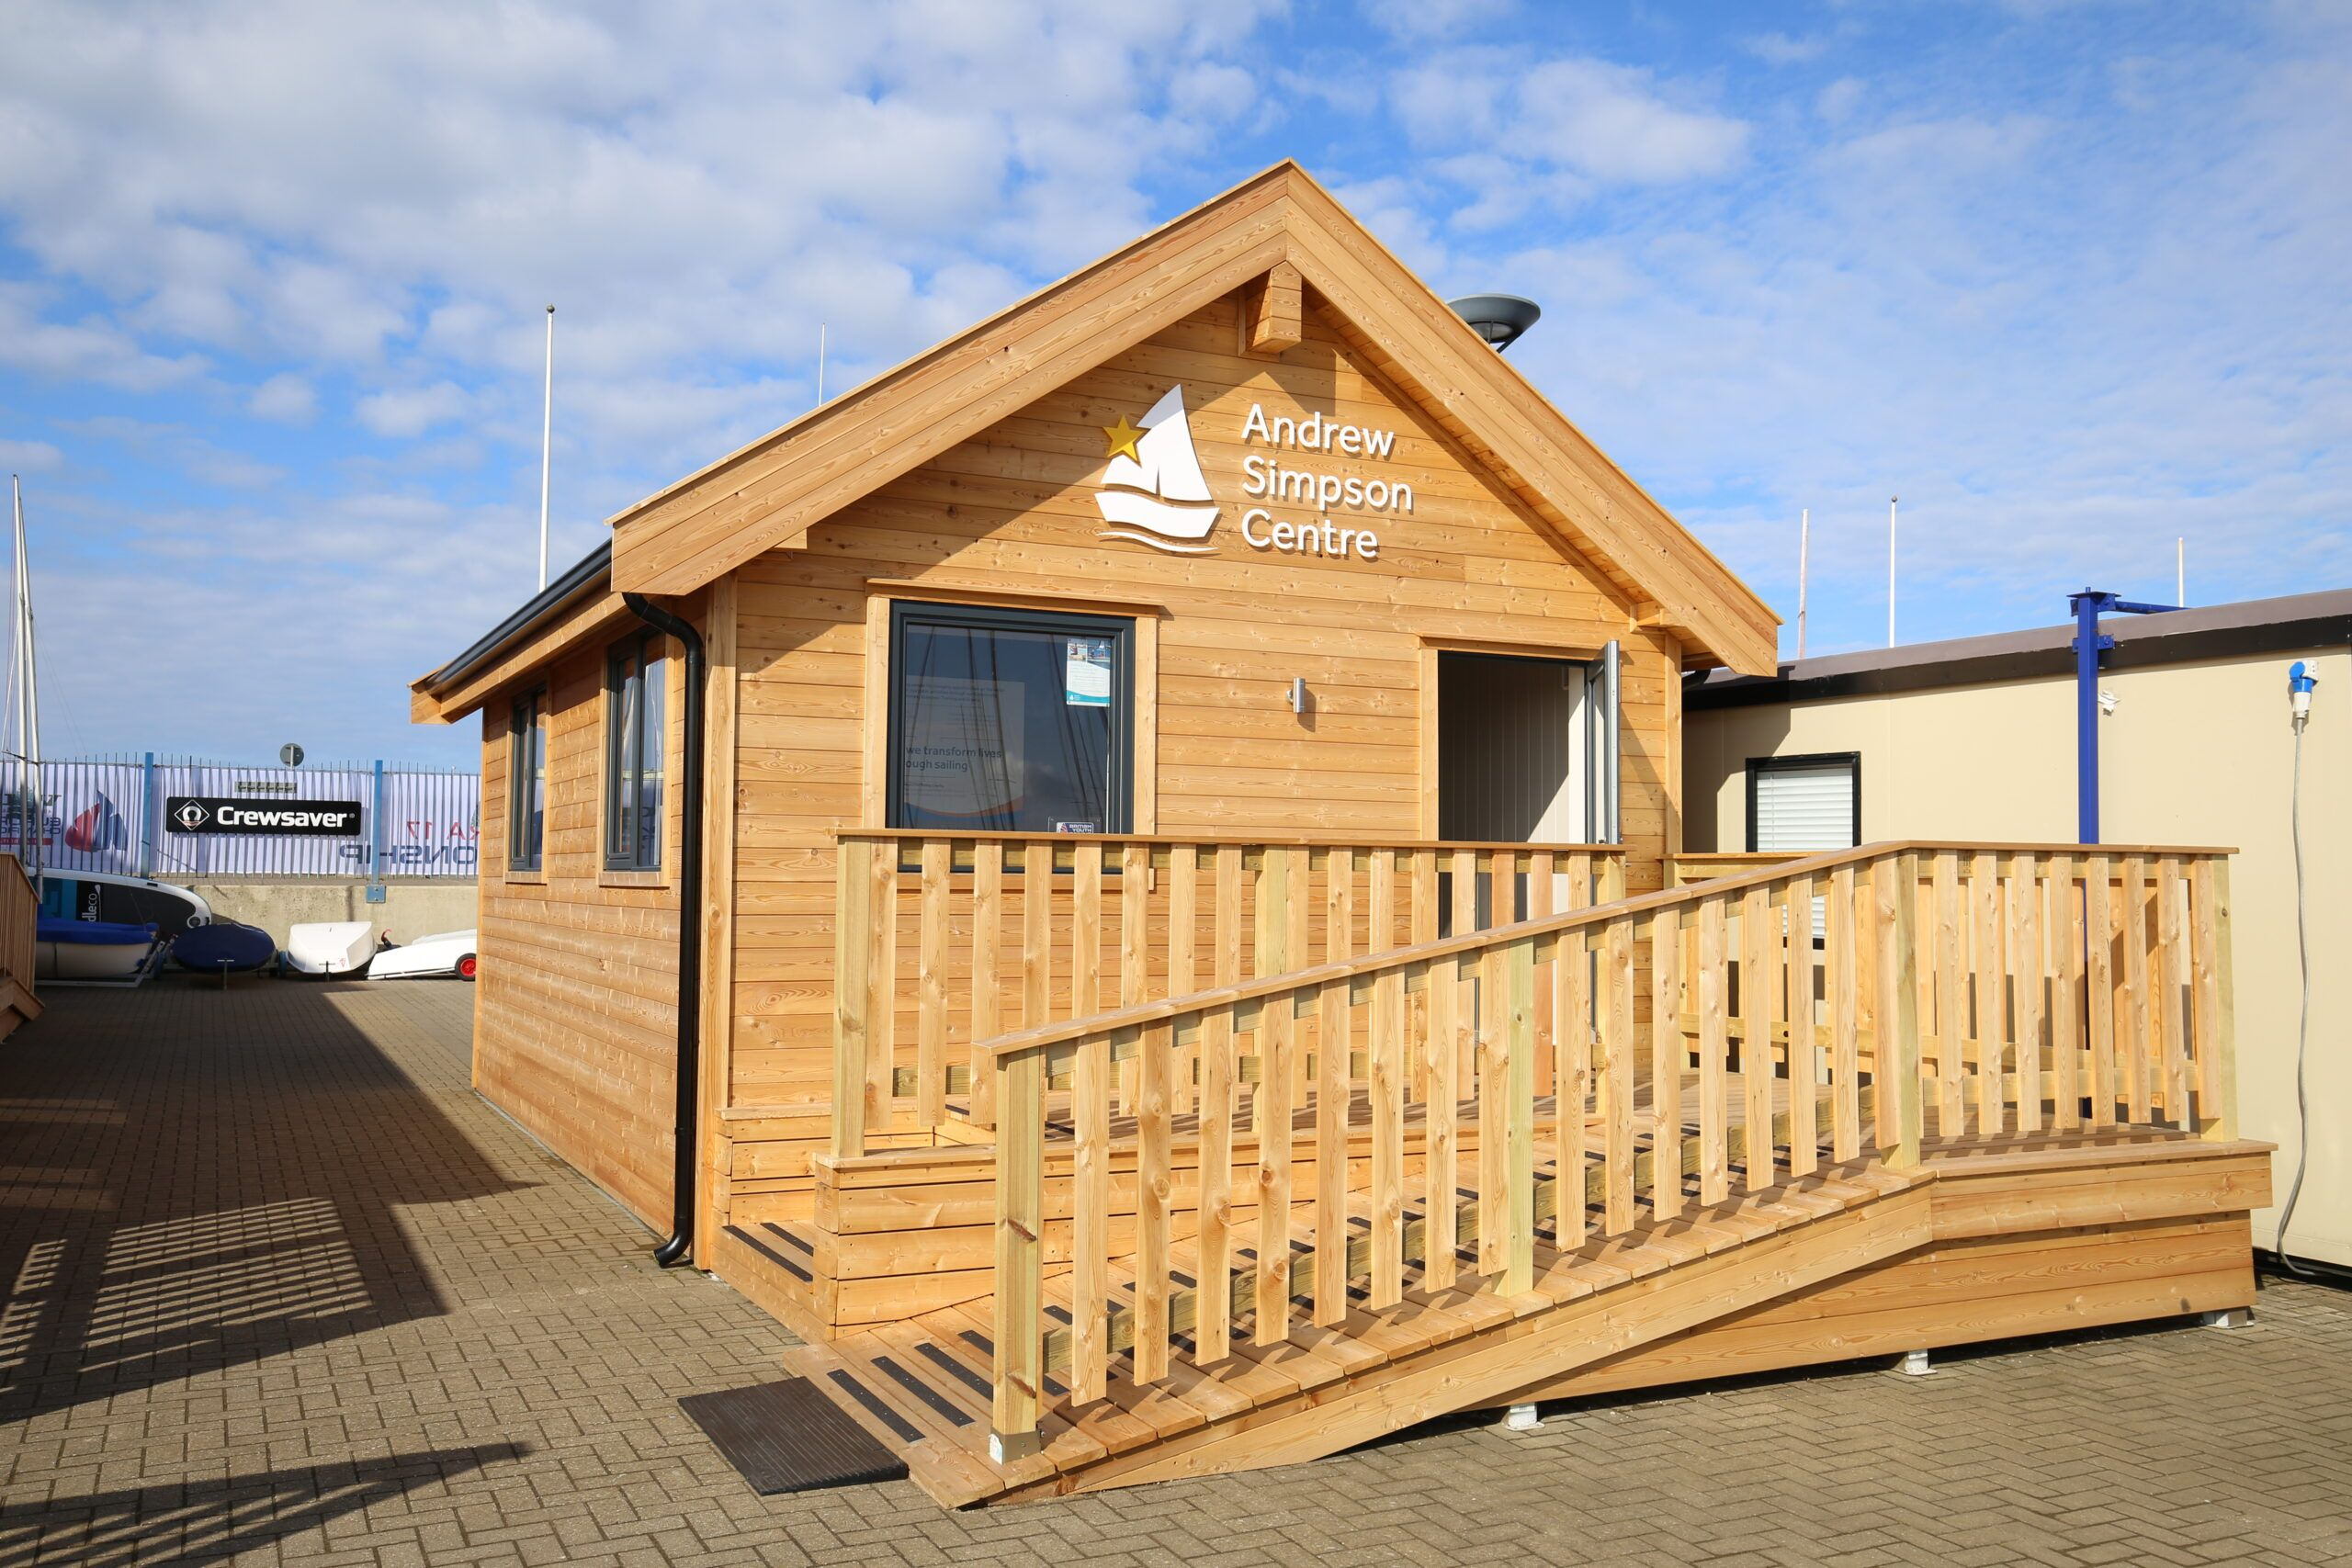 Sailing Centre in Weymouth